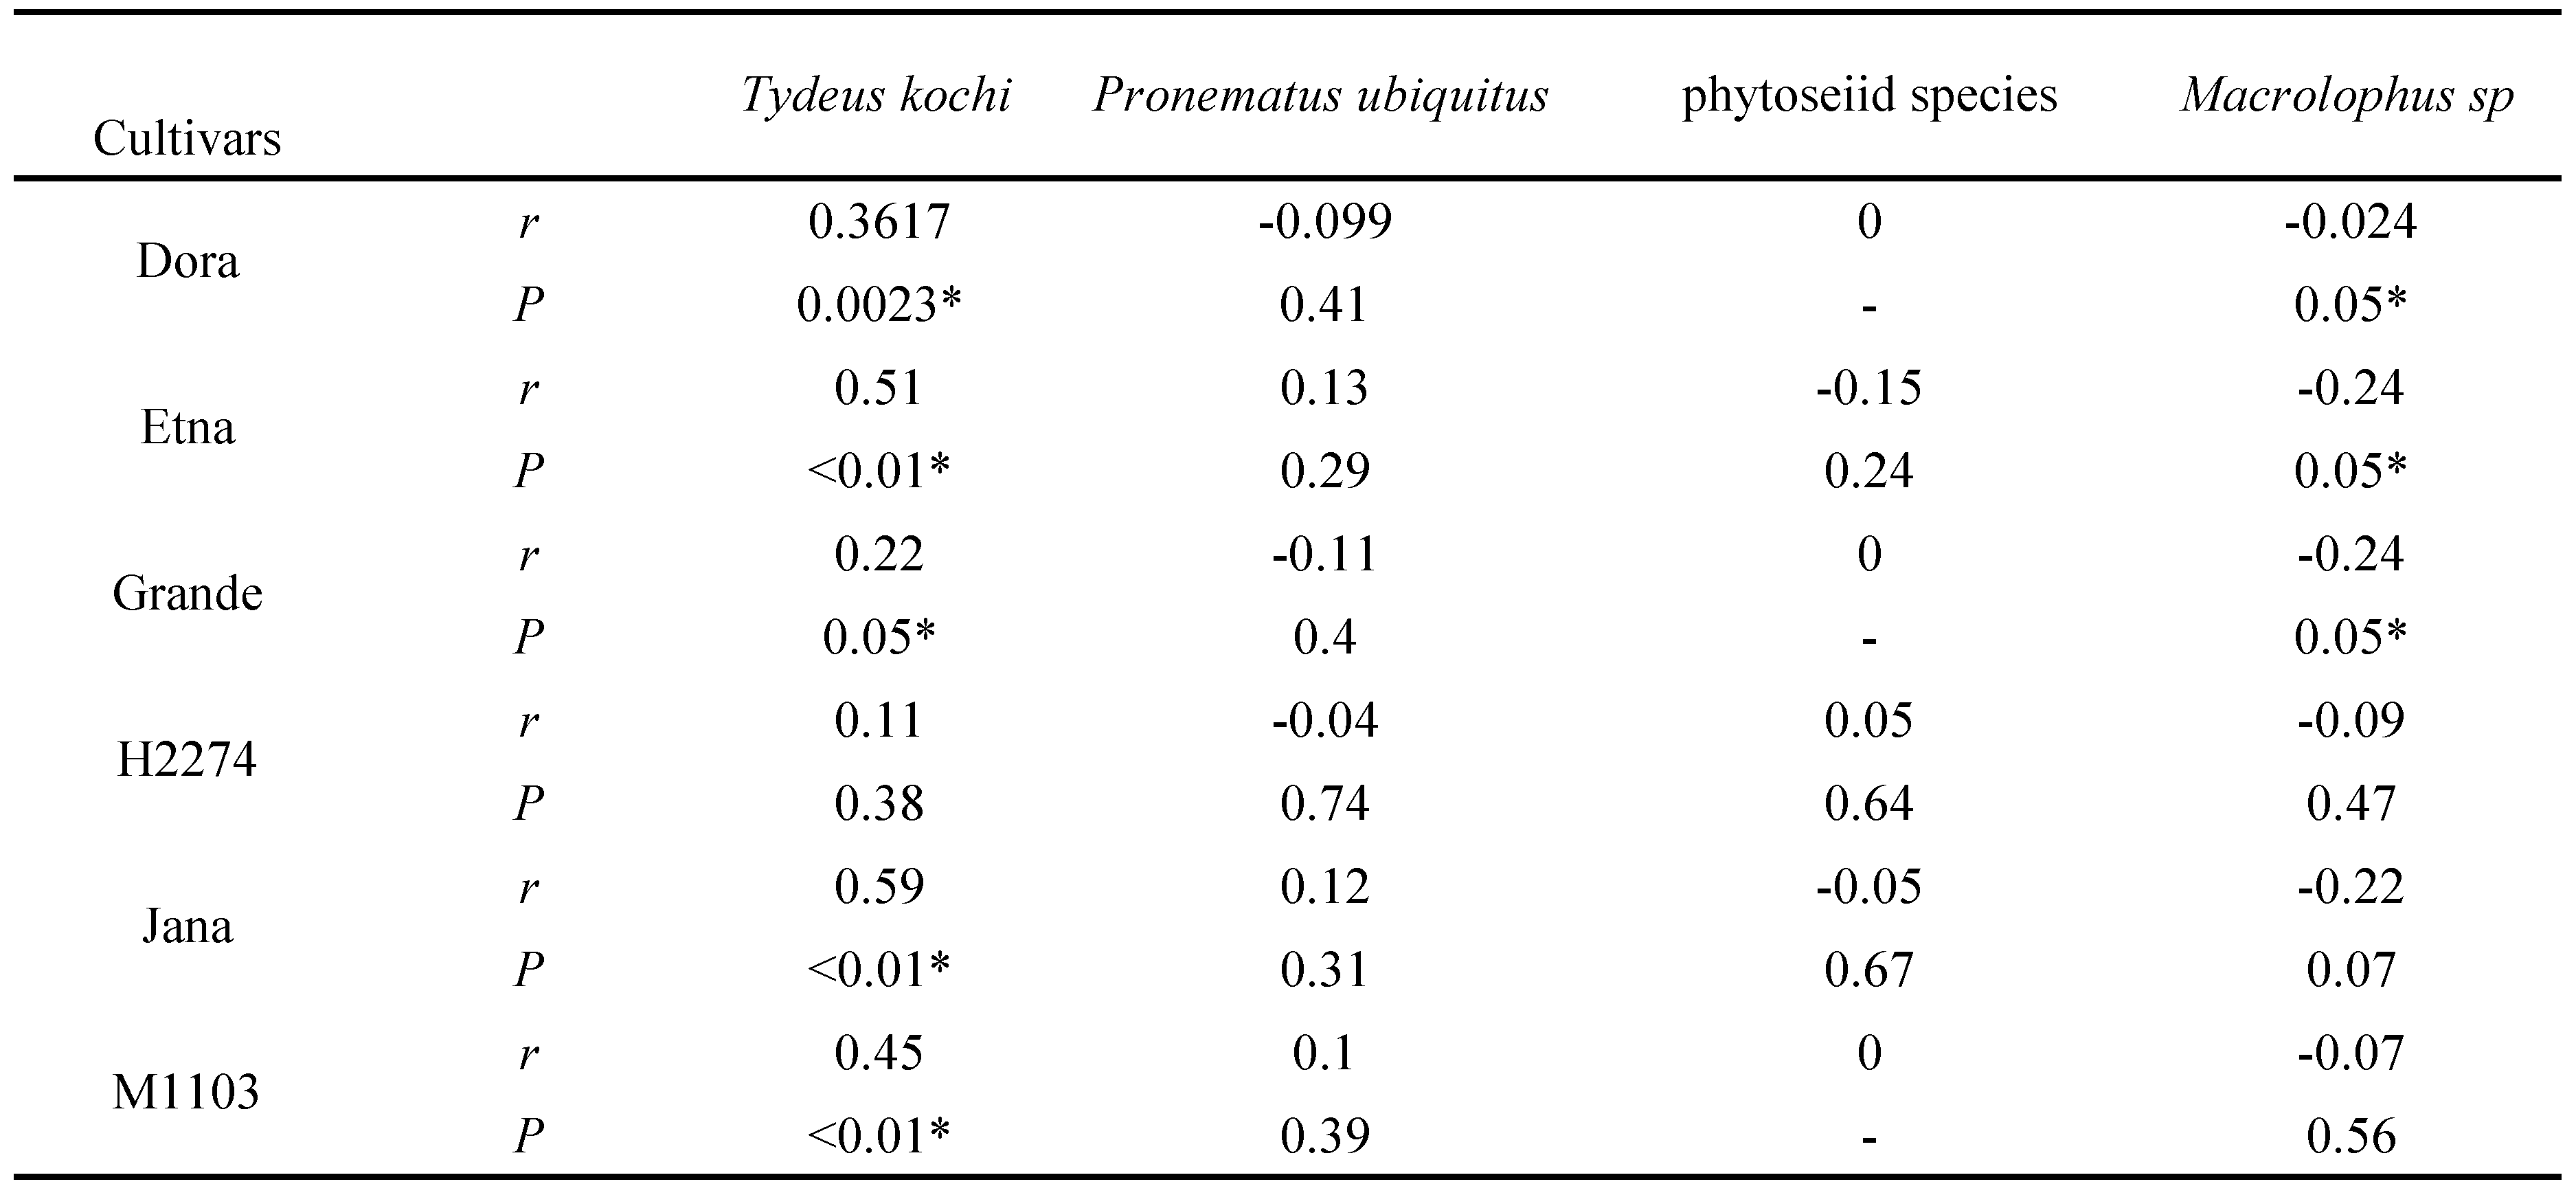 Tritrophic relationships among tomato cultivars, the rust mite